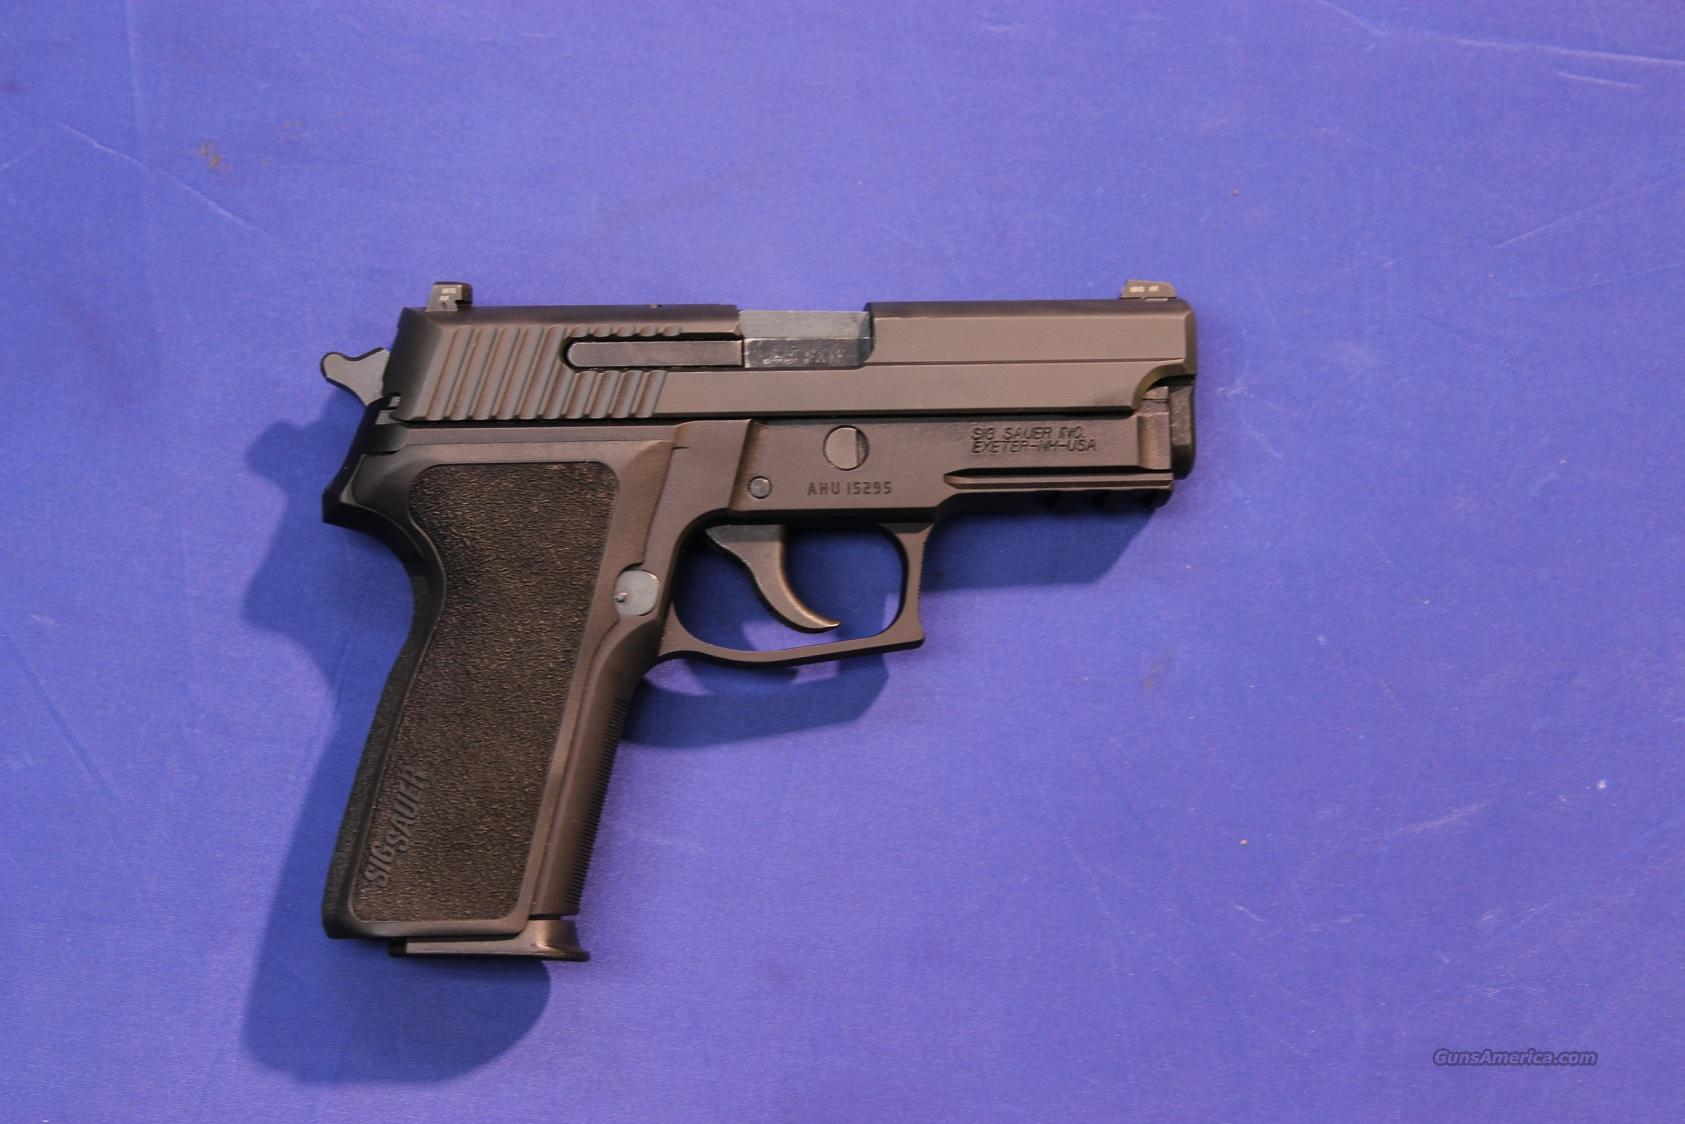 *SOLD*  SIG SAUER P229 R .40 S&W  Guns > Pistols > Sig - Sauer/Sigarms Pistols > P229